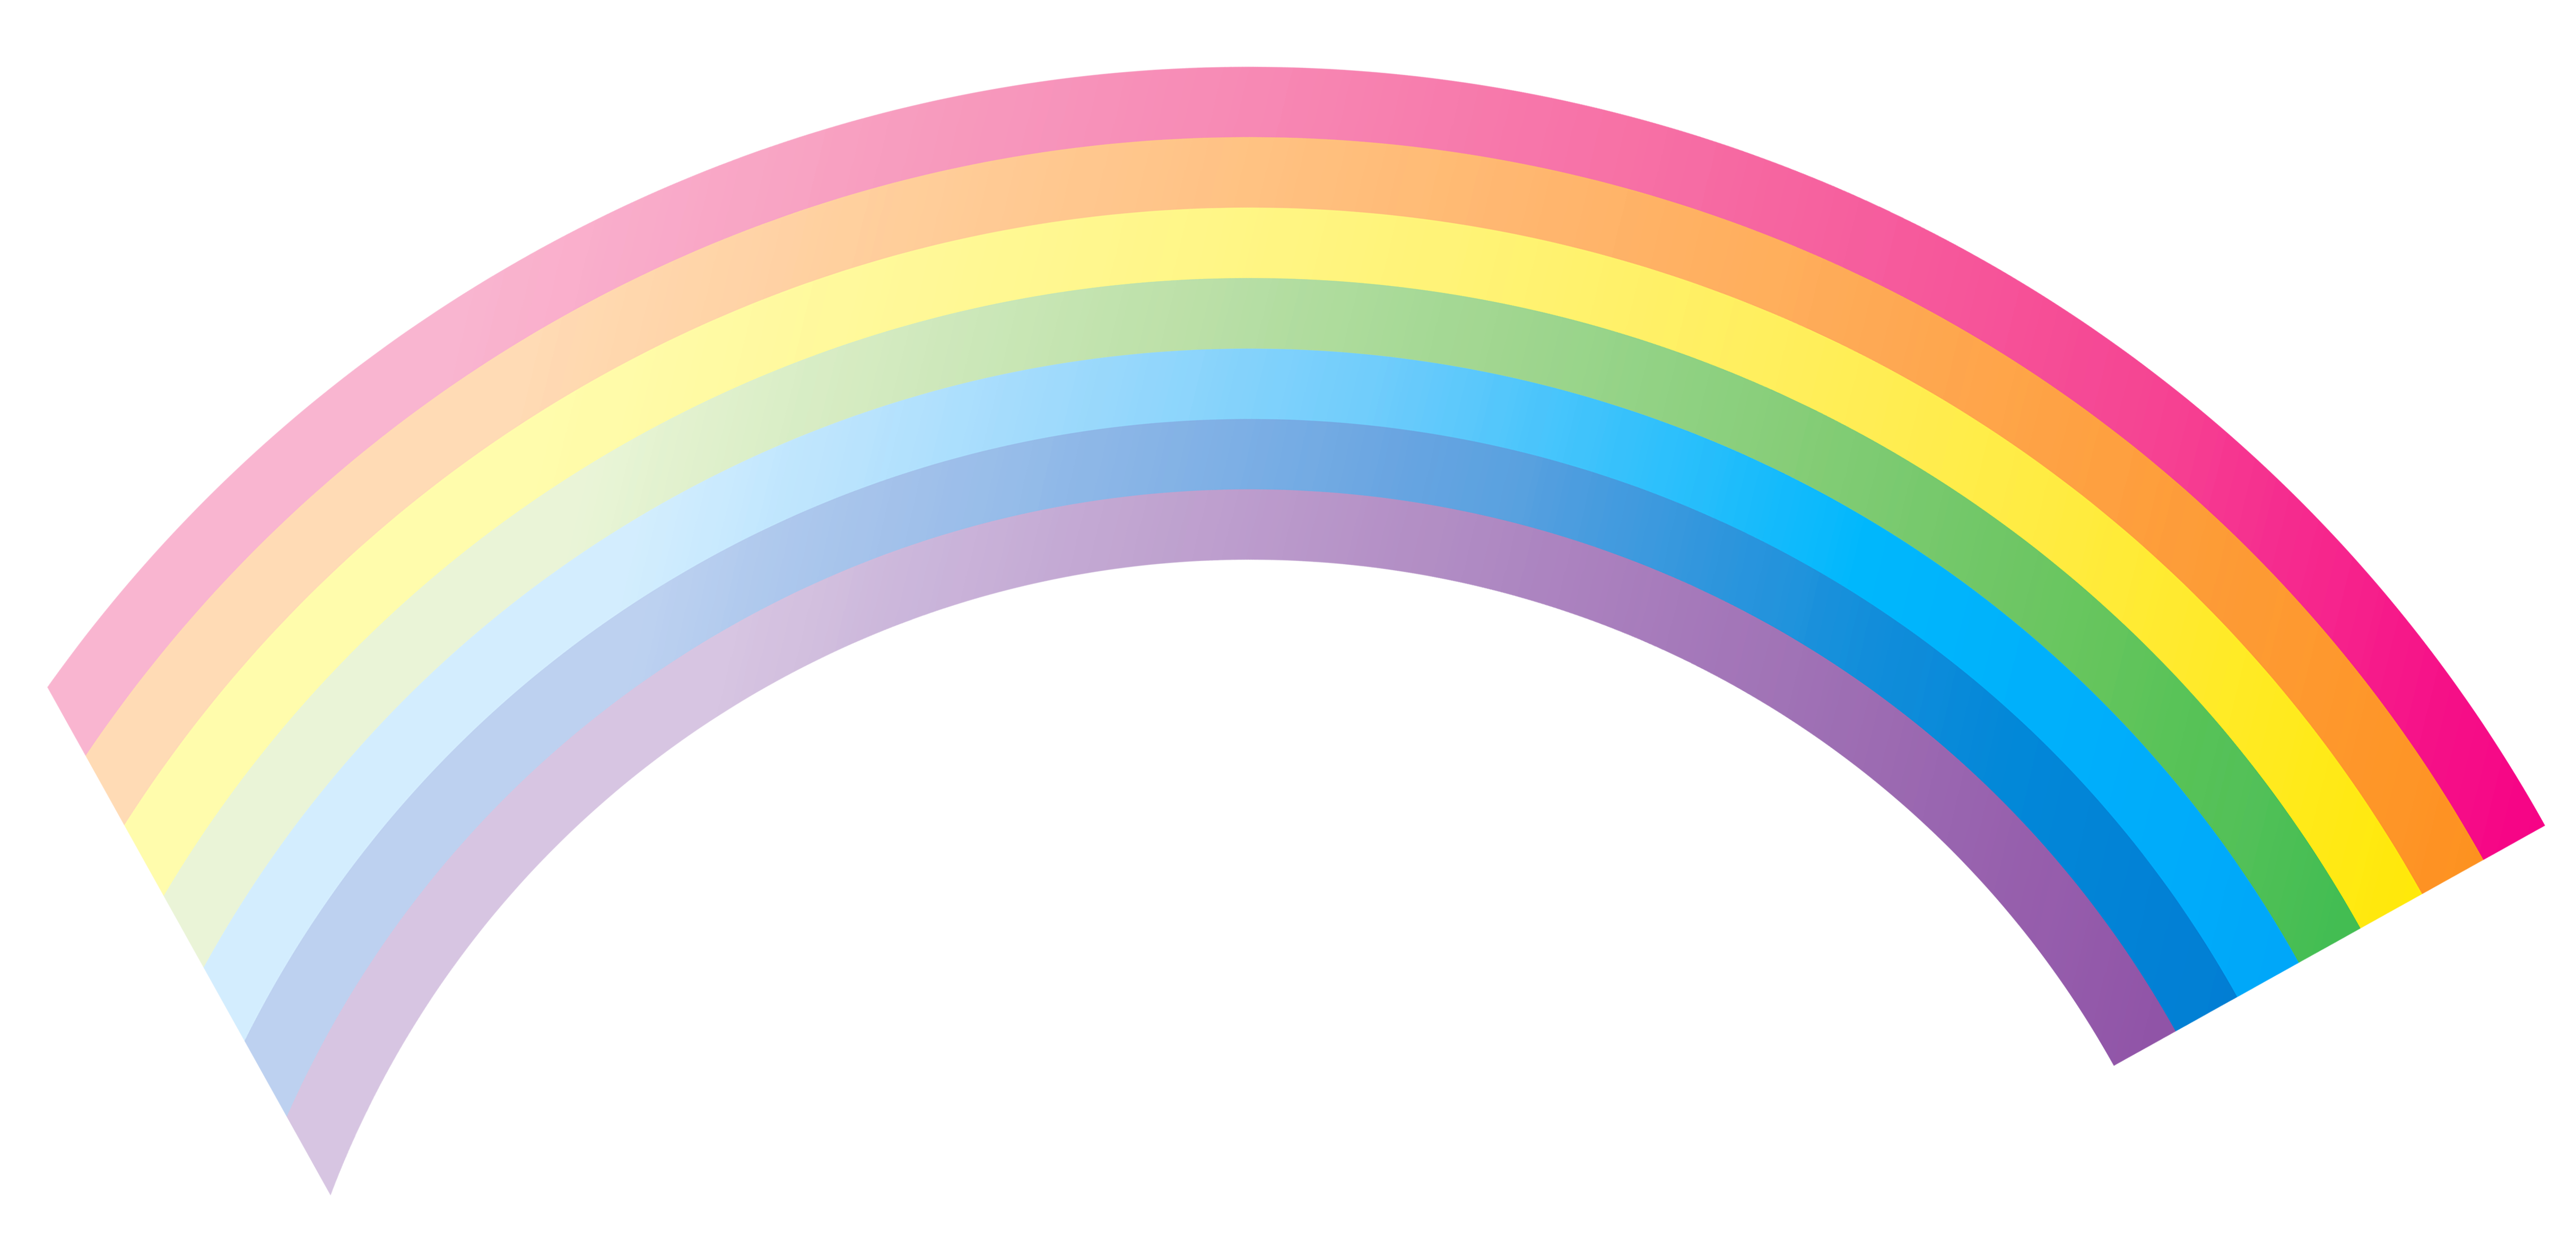 Png gallery yopriceville high. Heat clipart rainbow